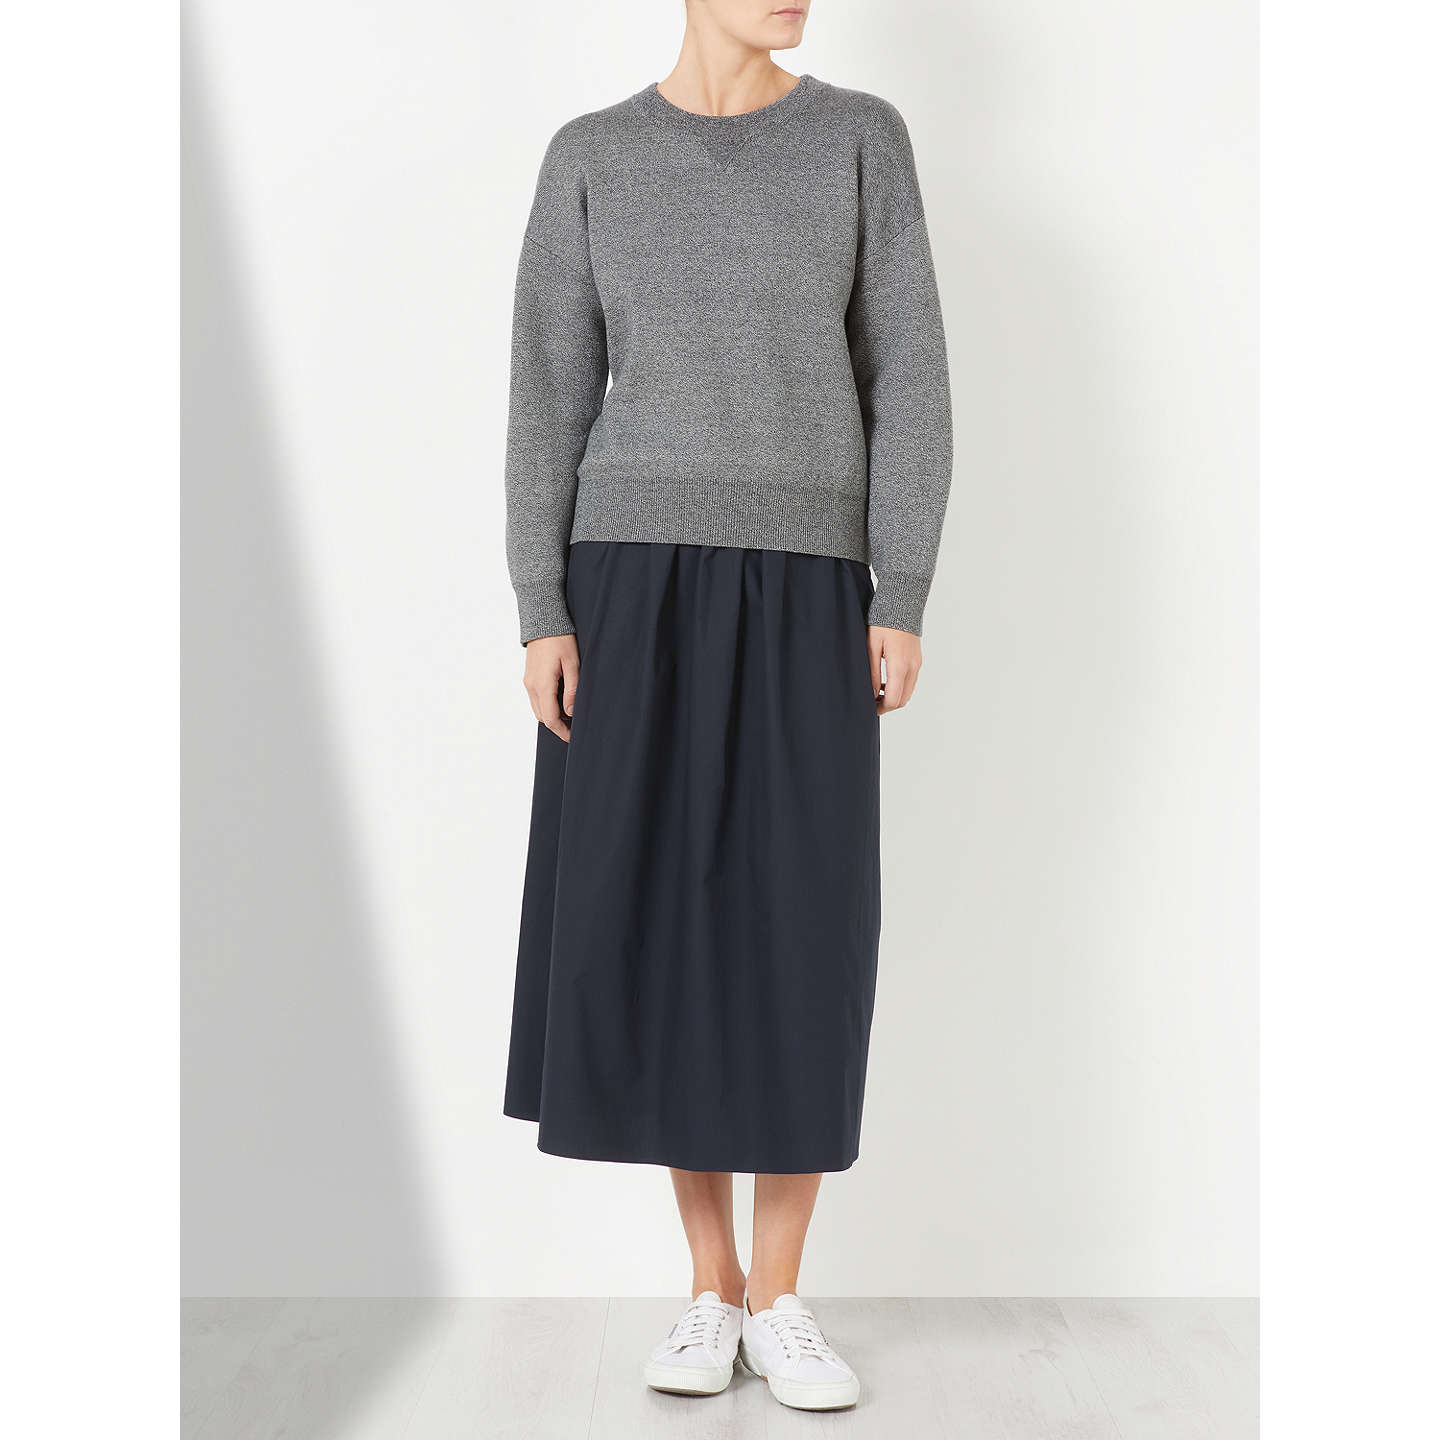 BuyKin by John Lewis Compact Cotton Jumper, Grey, S Online at johnlewis.com